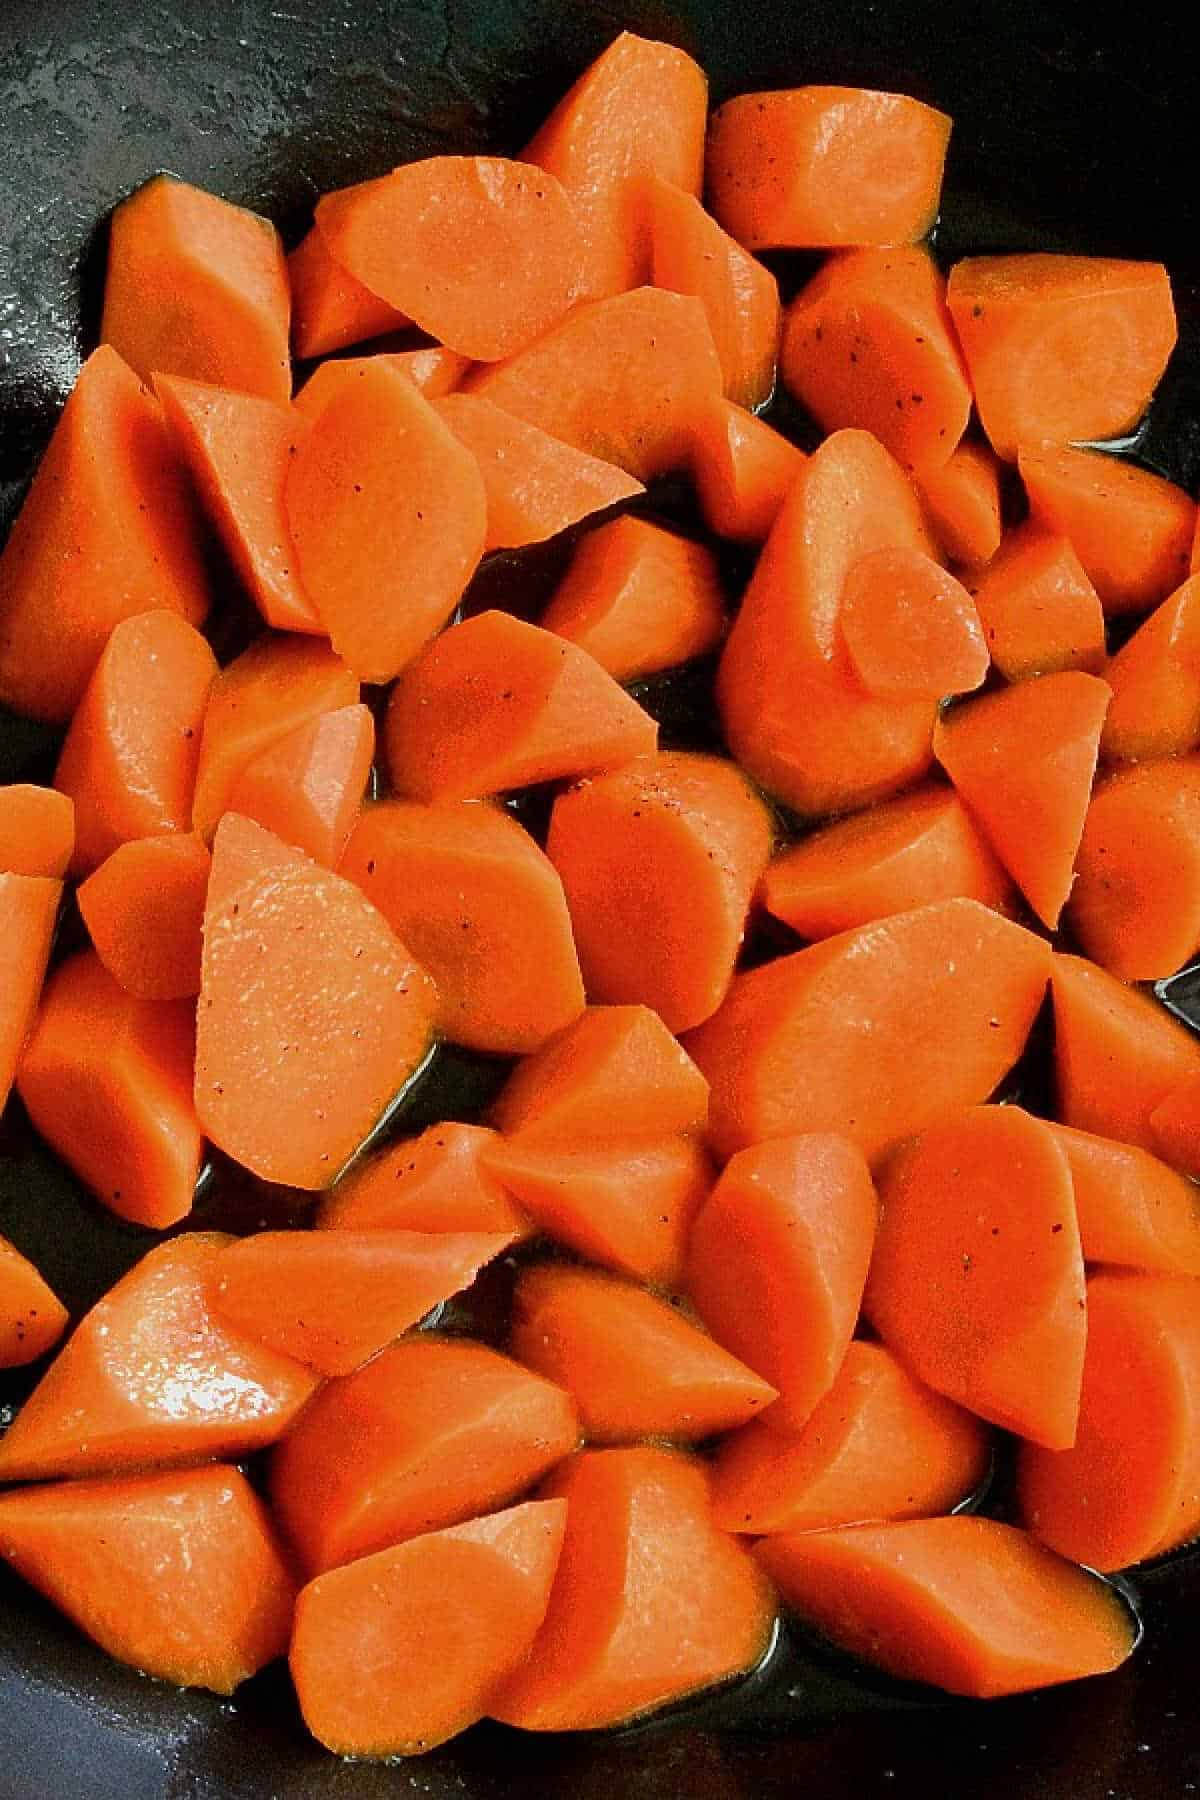 Overhead view of rolled cut carrots in a pan.